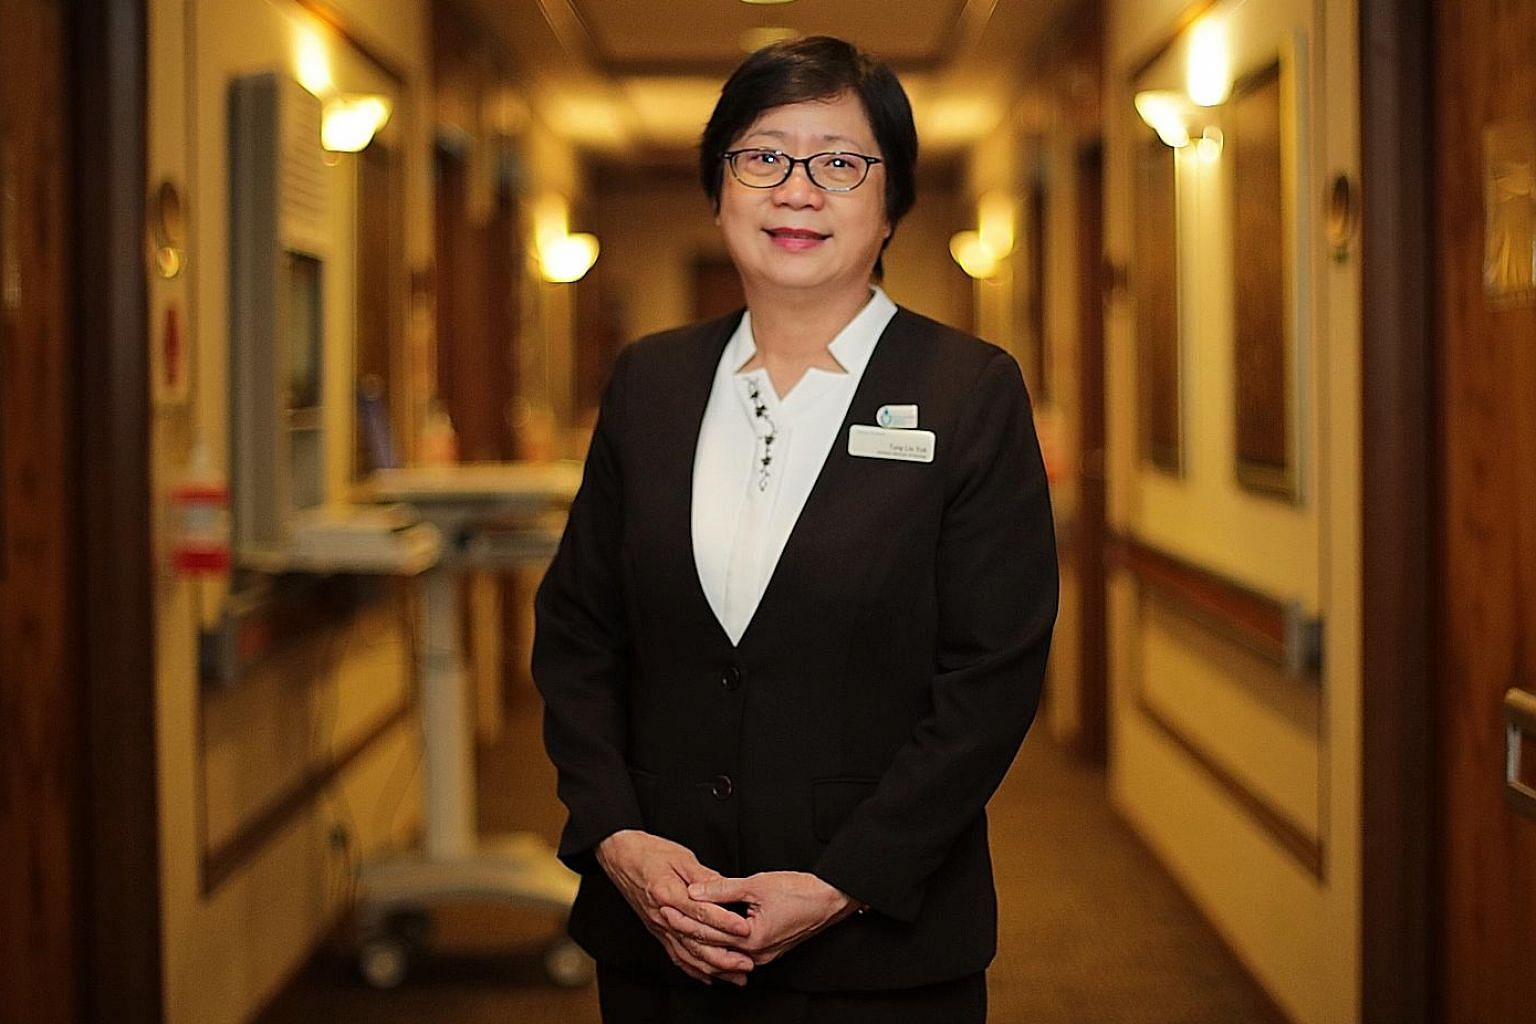 Ms Tang Lin Yok was one of the pioneers in the Singapore Fire Brigade Ambulance Service - a dedicated ambulance service for government hospitals. In 1988, she joined Mount Elizabeth Hospital, and since 2010 she has been managing the various wards in